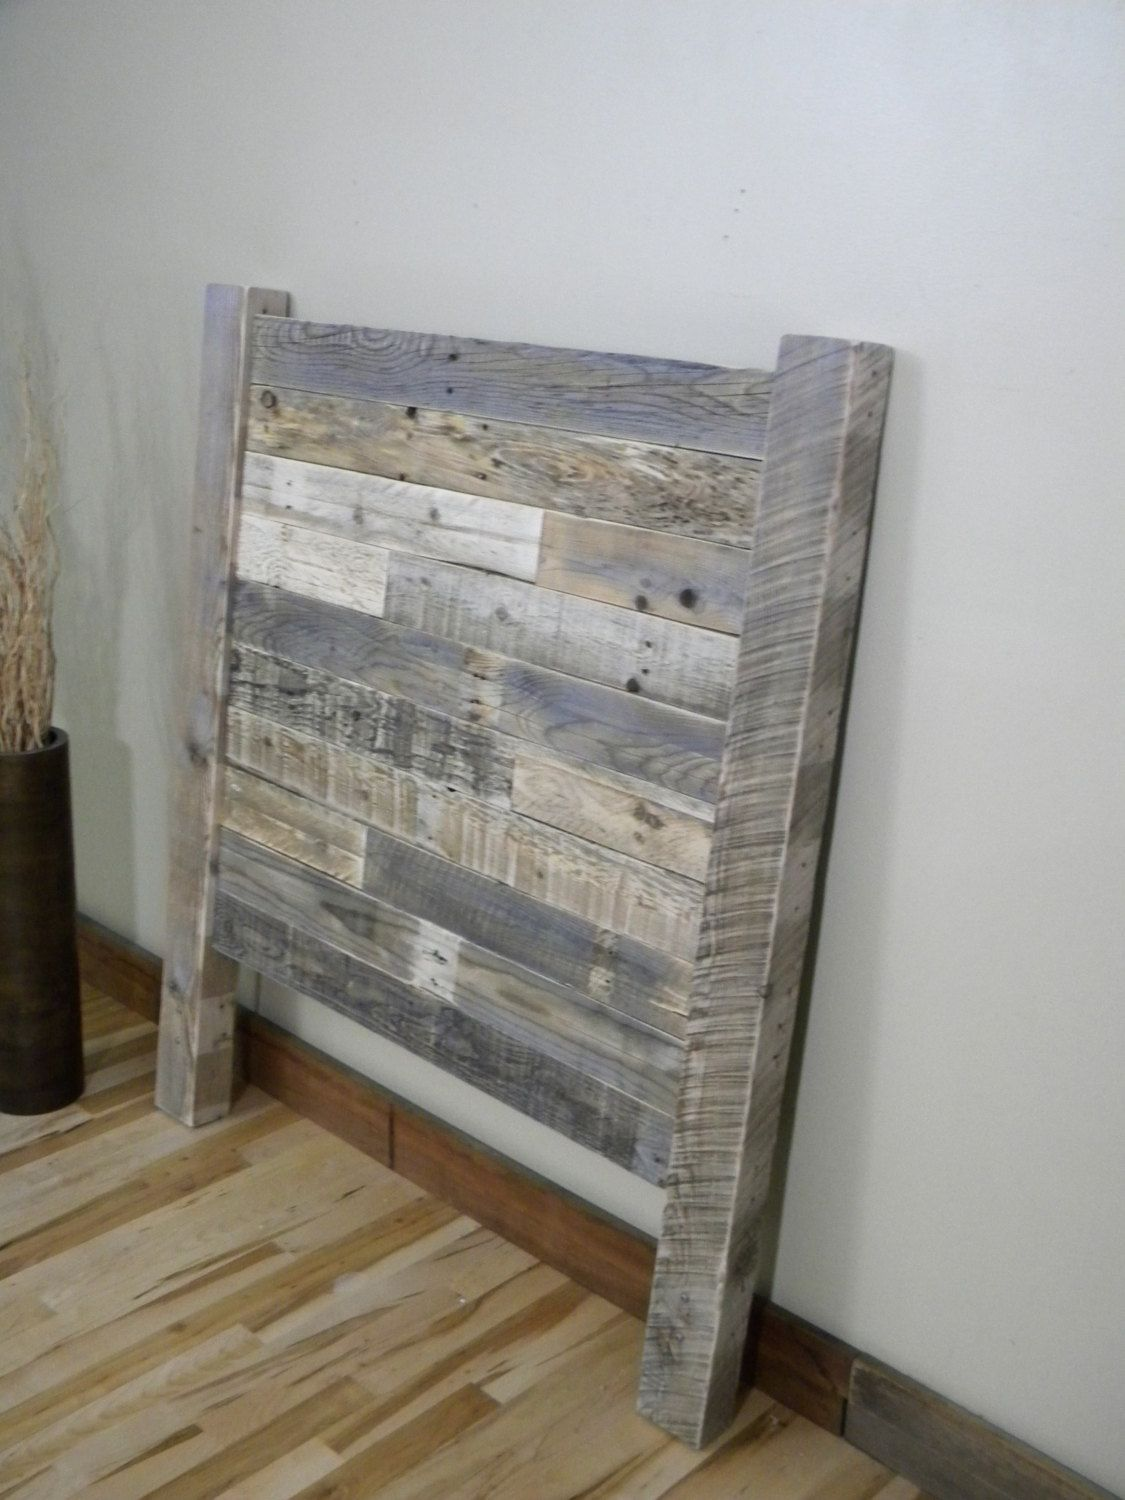 Rustic bed headboard - Wood Headboard Reclaimed Wood Twin Headboard Queen Headboard Rustic Furniture Beach Decor Primitive Decor Distressed Headboard